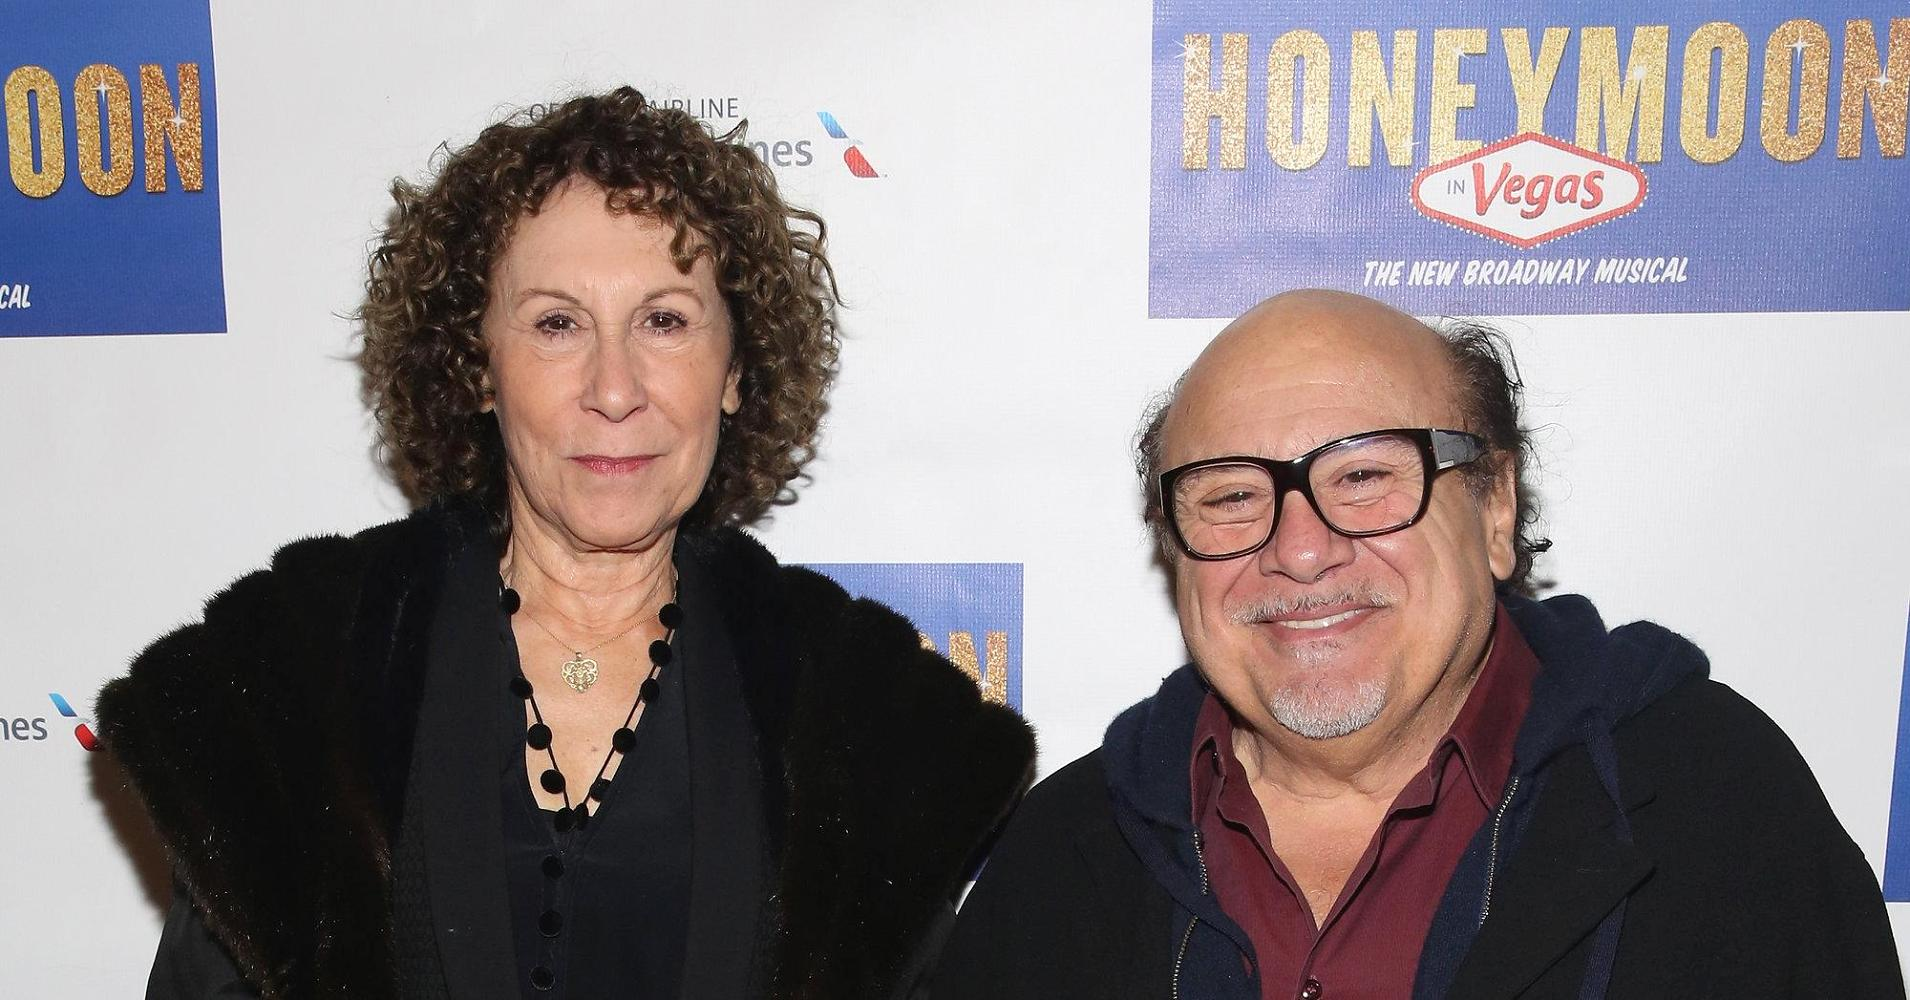 What do Danny DeVito and Arnold Schwarzenegger have in common? They are part of 'gray divorce' trend